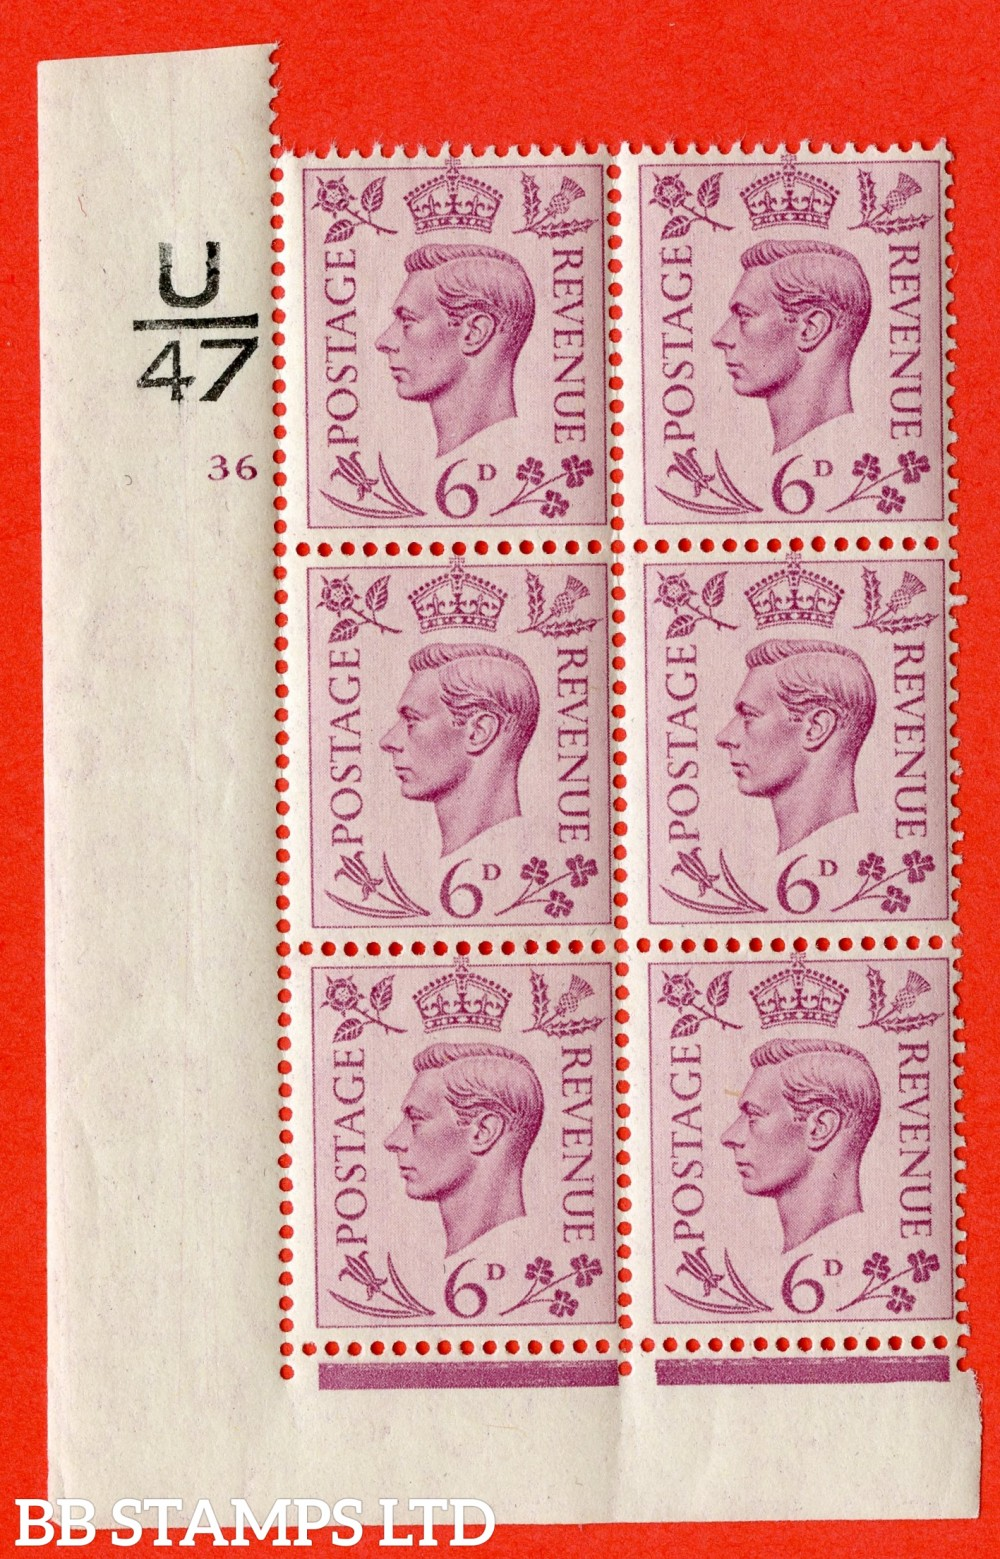 """SG. 470. Q22. 6d Purple. A superb UNMOUNTED MINT """" Control U47 cylinder 36 no dot """" control block of 6 with perf type 2 I/E."""